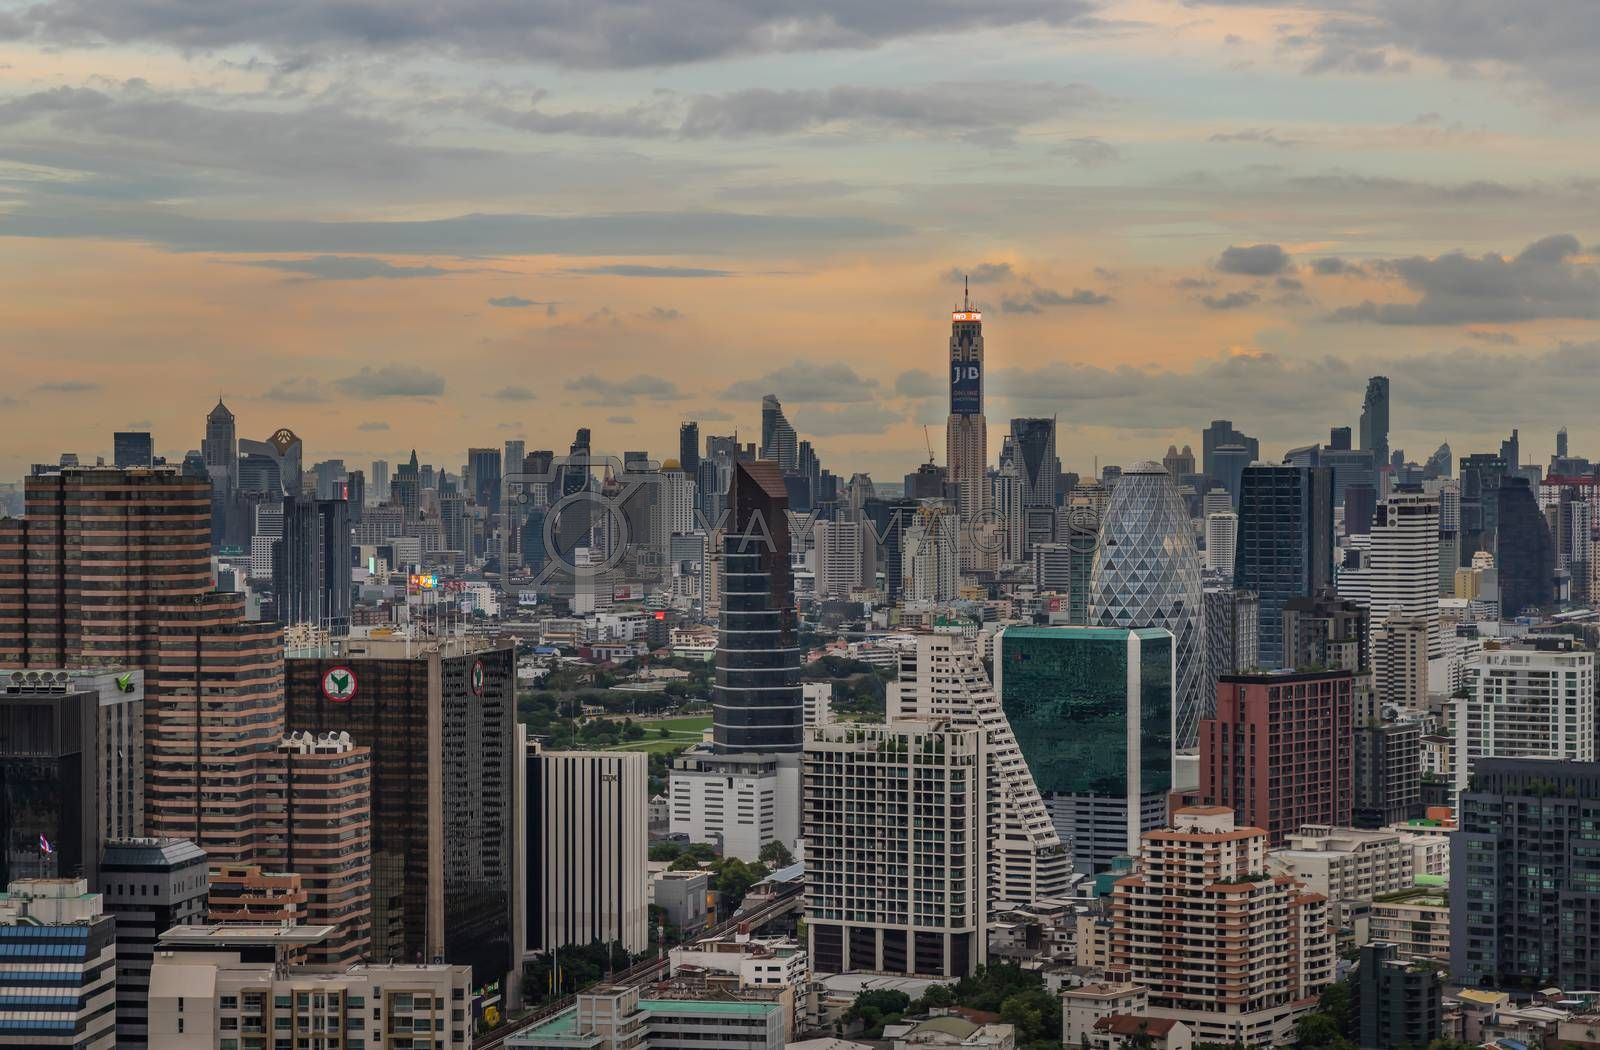 Bangkok, Thailand - Jul 25, 2020 : City view of Bangkok before the sunset creates energetic feeling to get ready for the day waiting ahead. Selective focus.